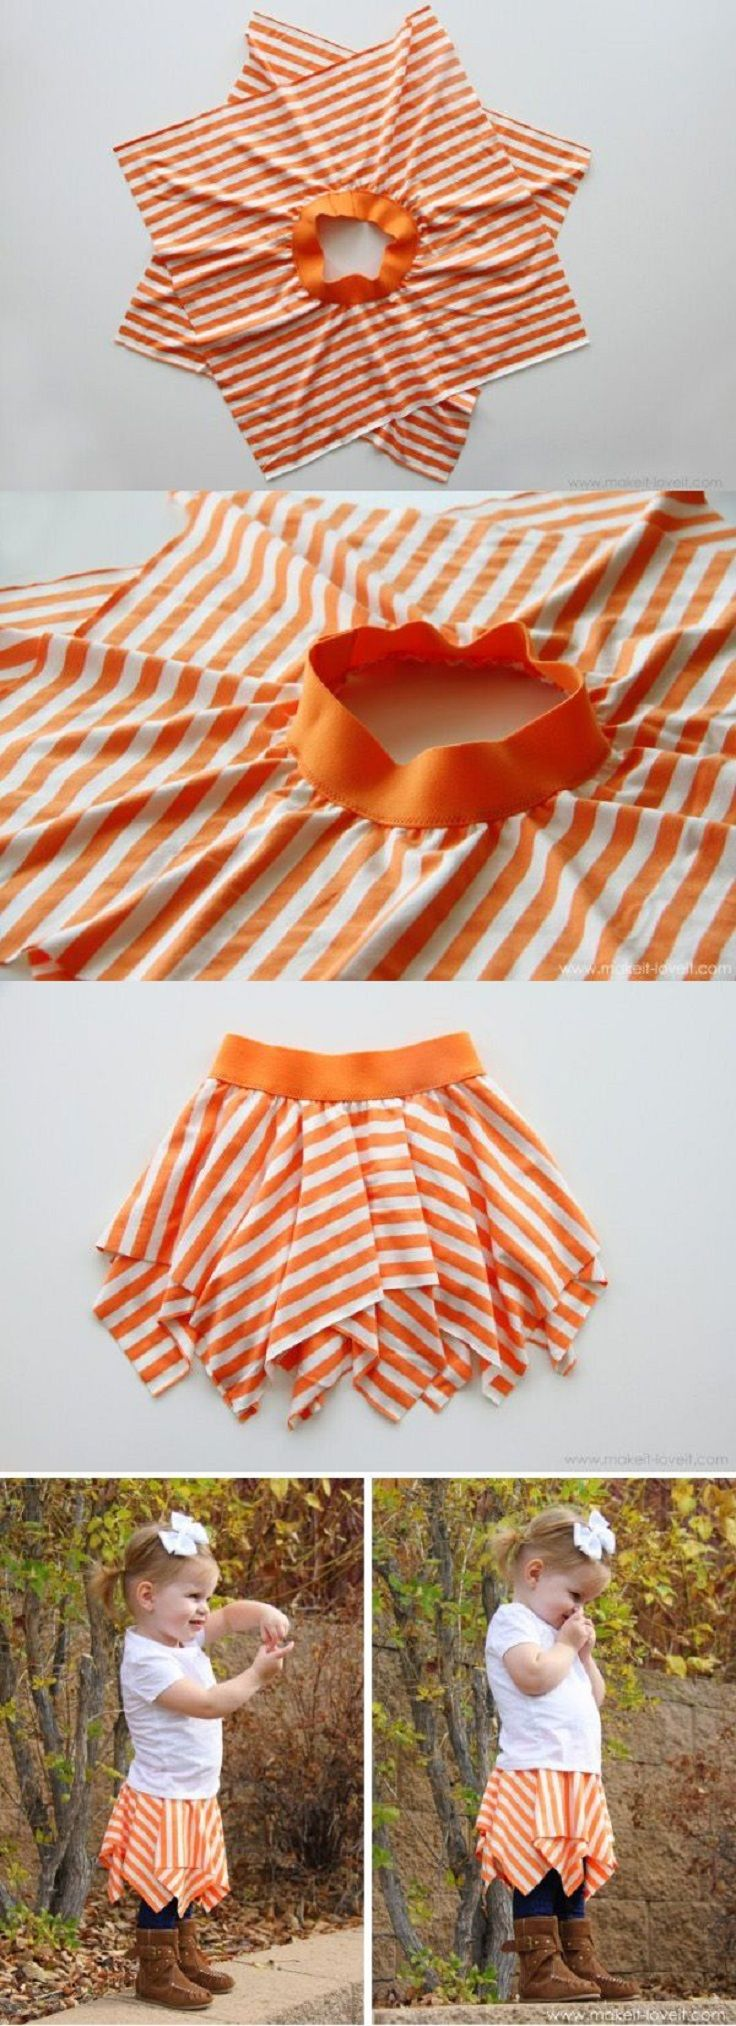 DIY – Square Circle Skirt.  I made one many years ago and now have plans for another...for a costume :)